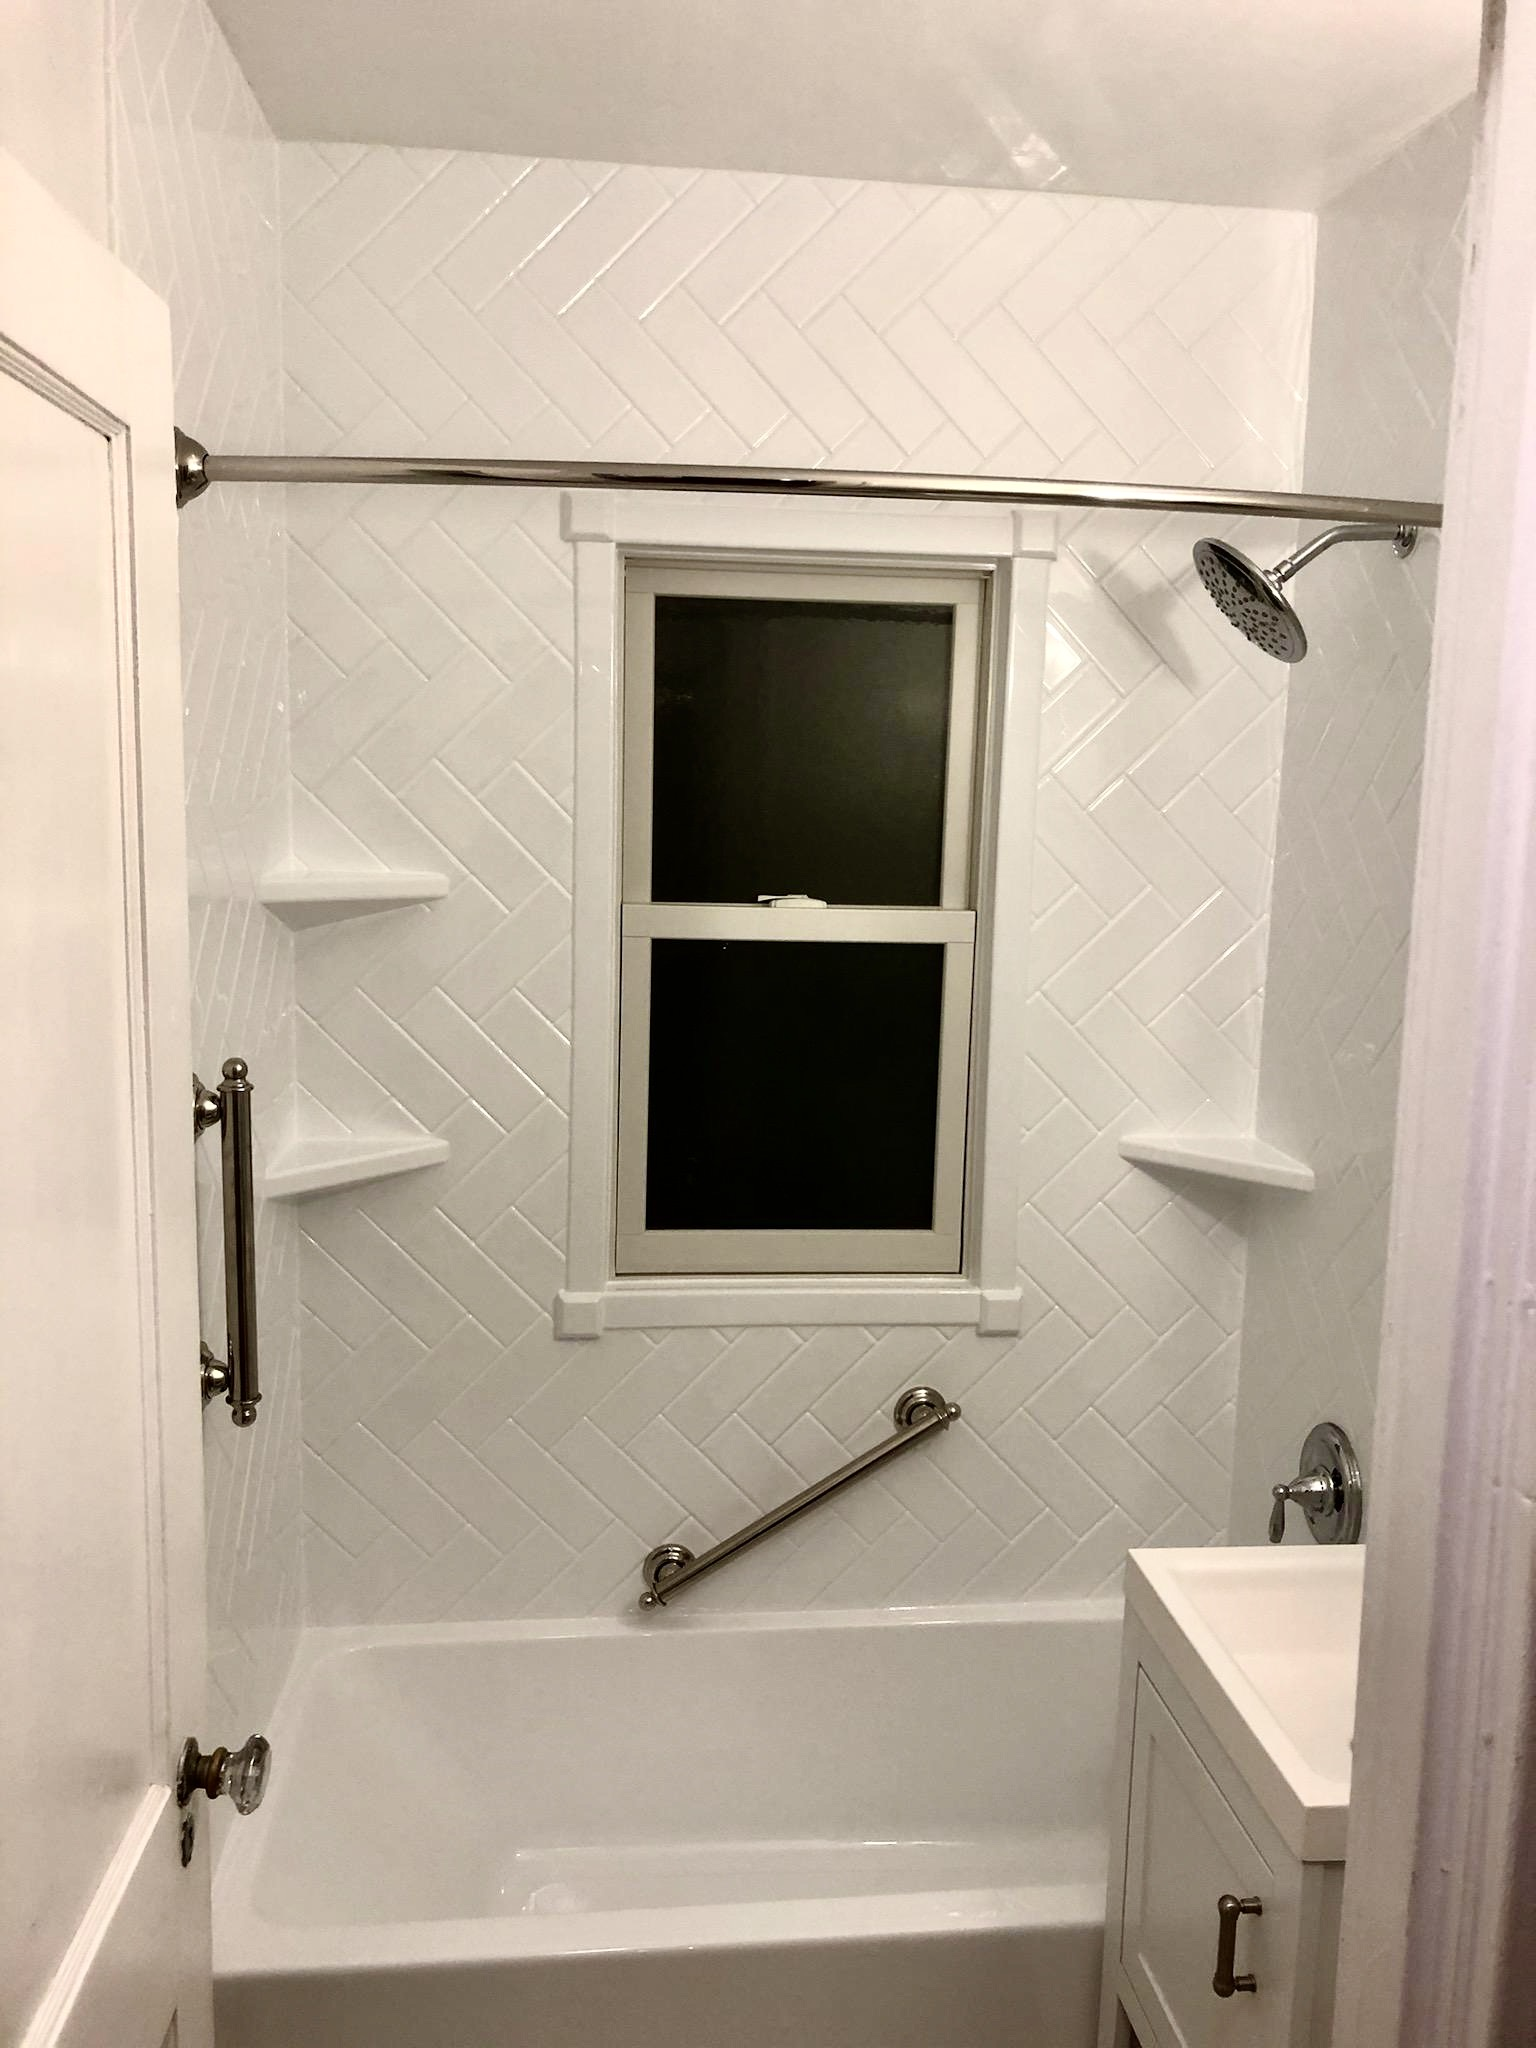 Re-Bath Durabath White Herringbone Surround, Custom Shelving and Grab Bars